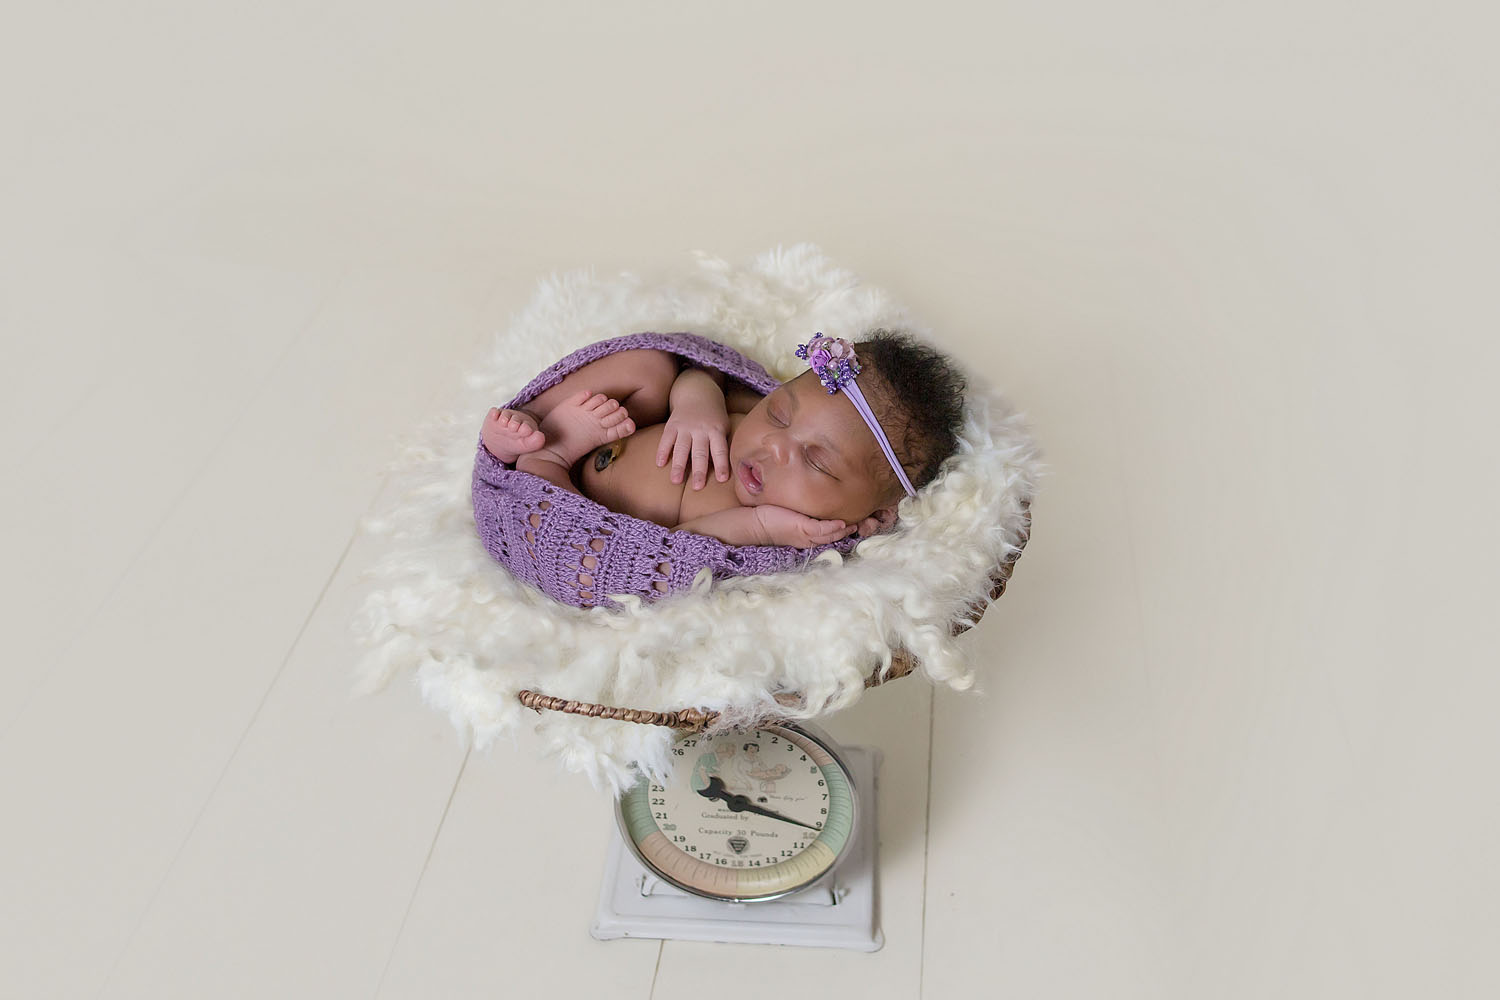 newborn baby photo on scale hollywood